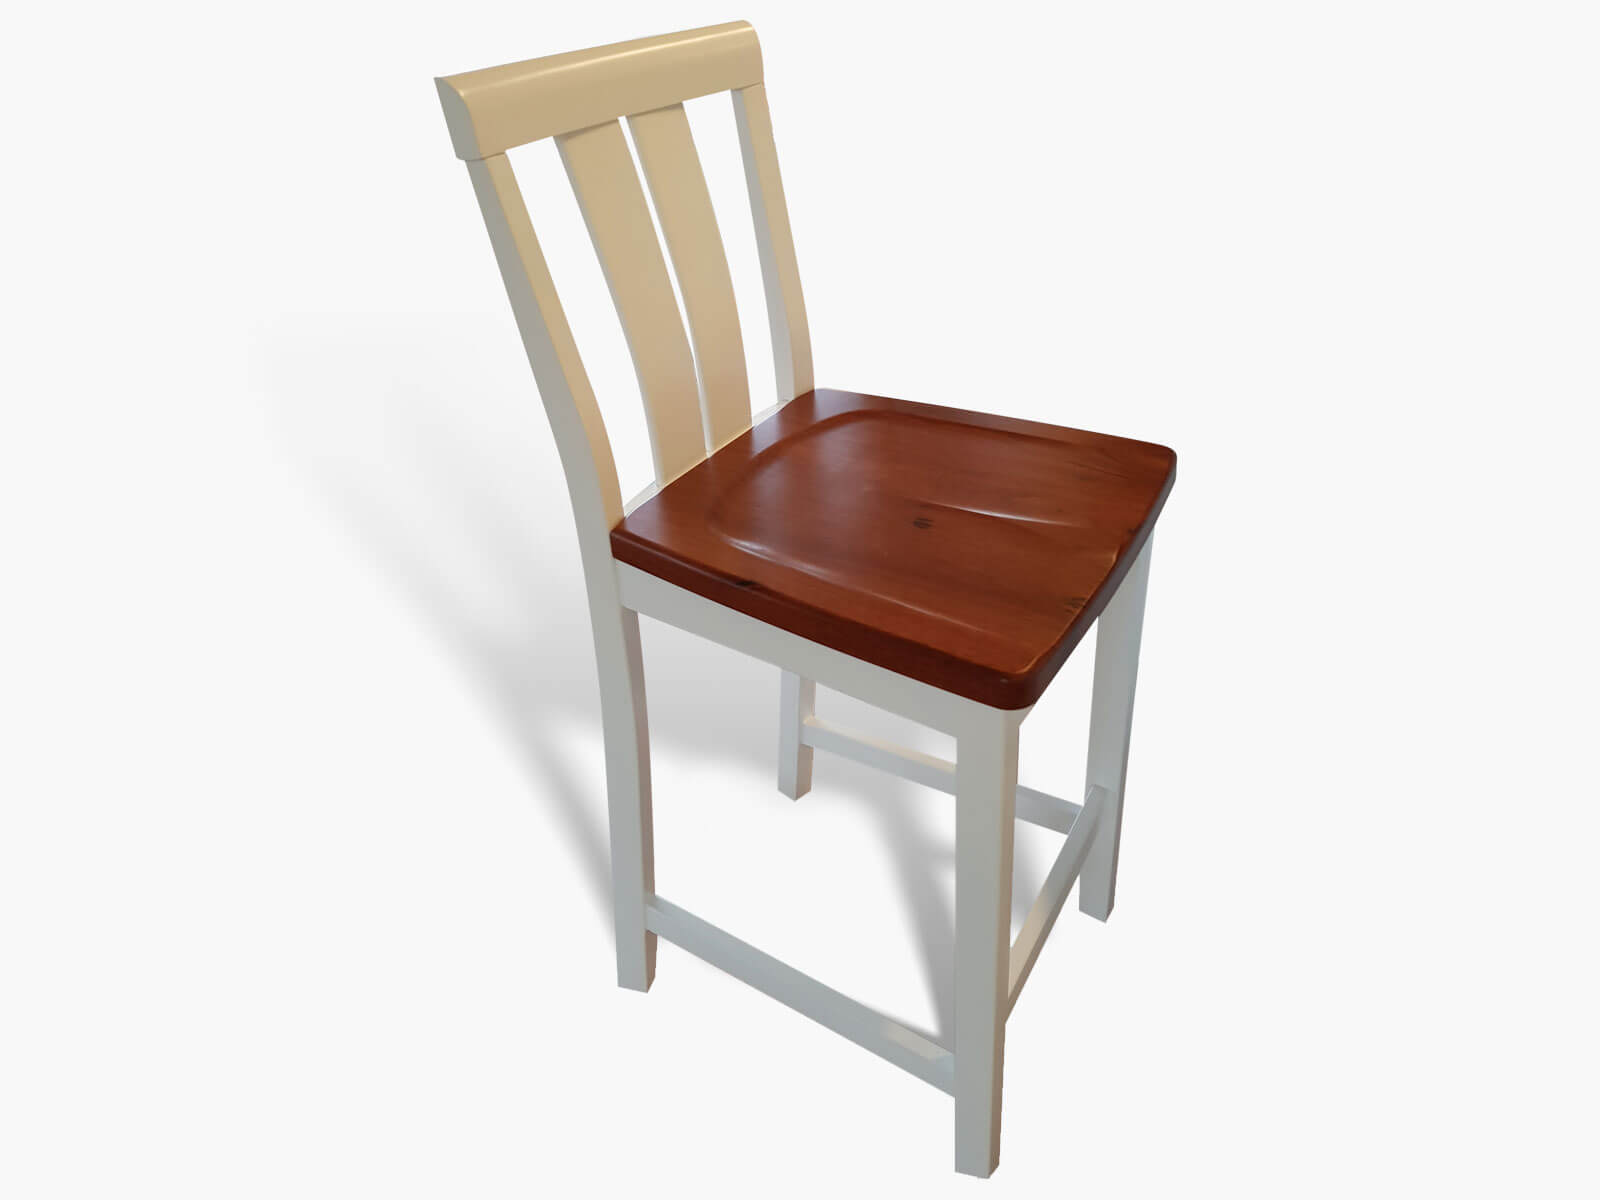 Montville-Barstool Timber Furniture